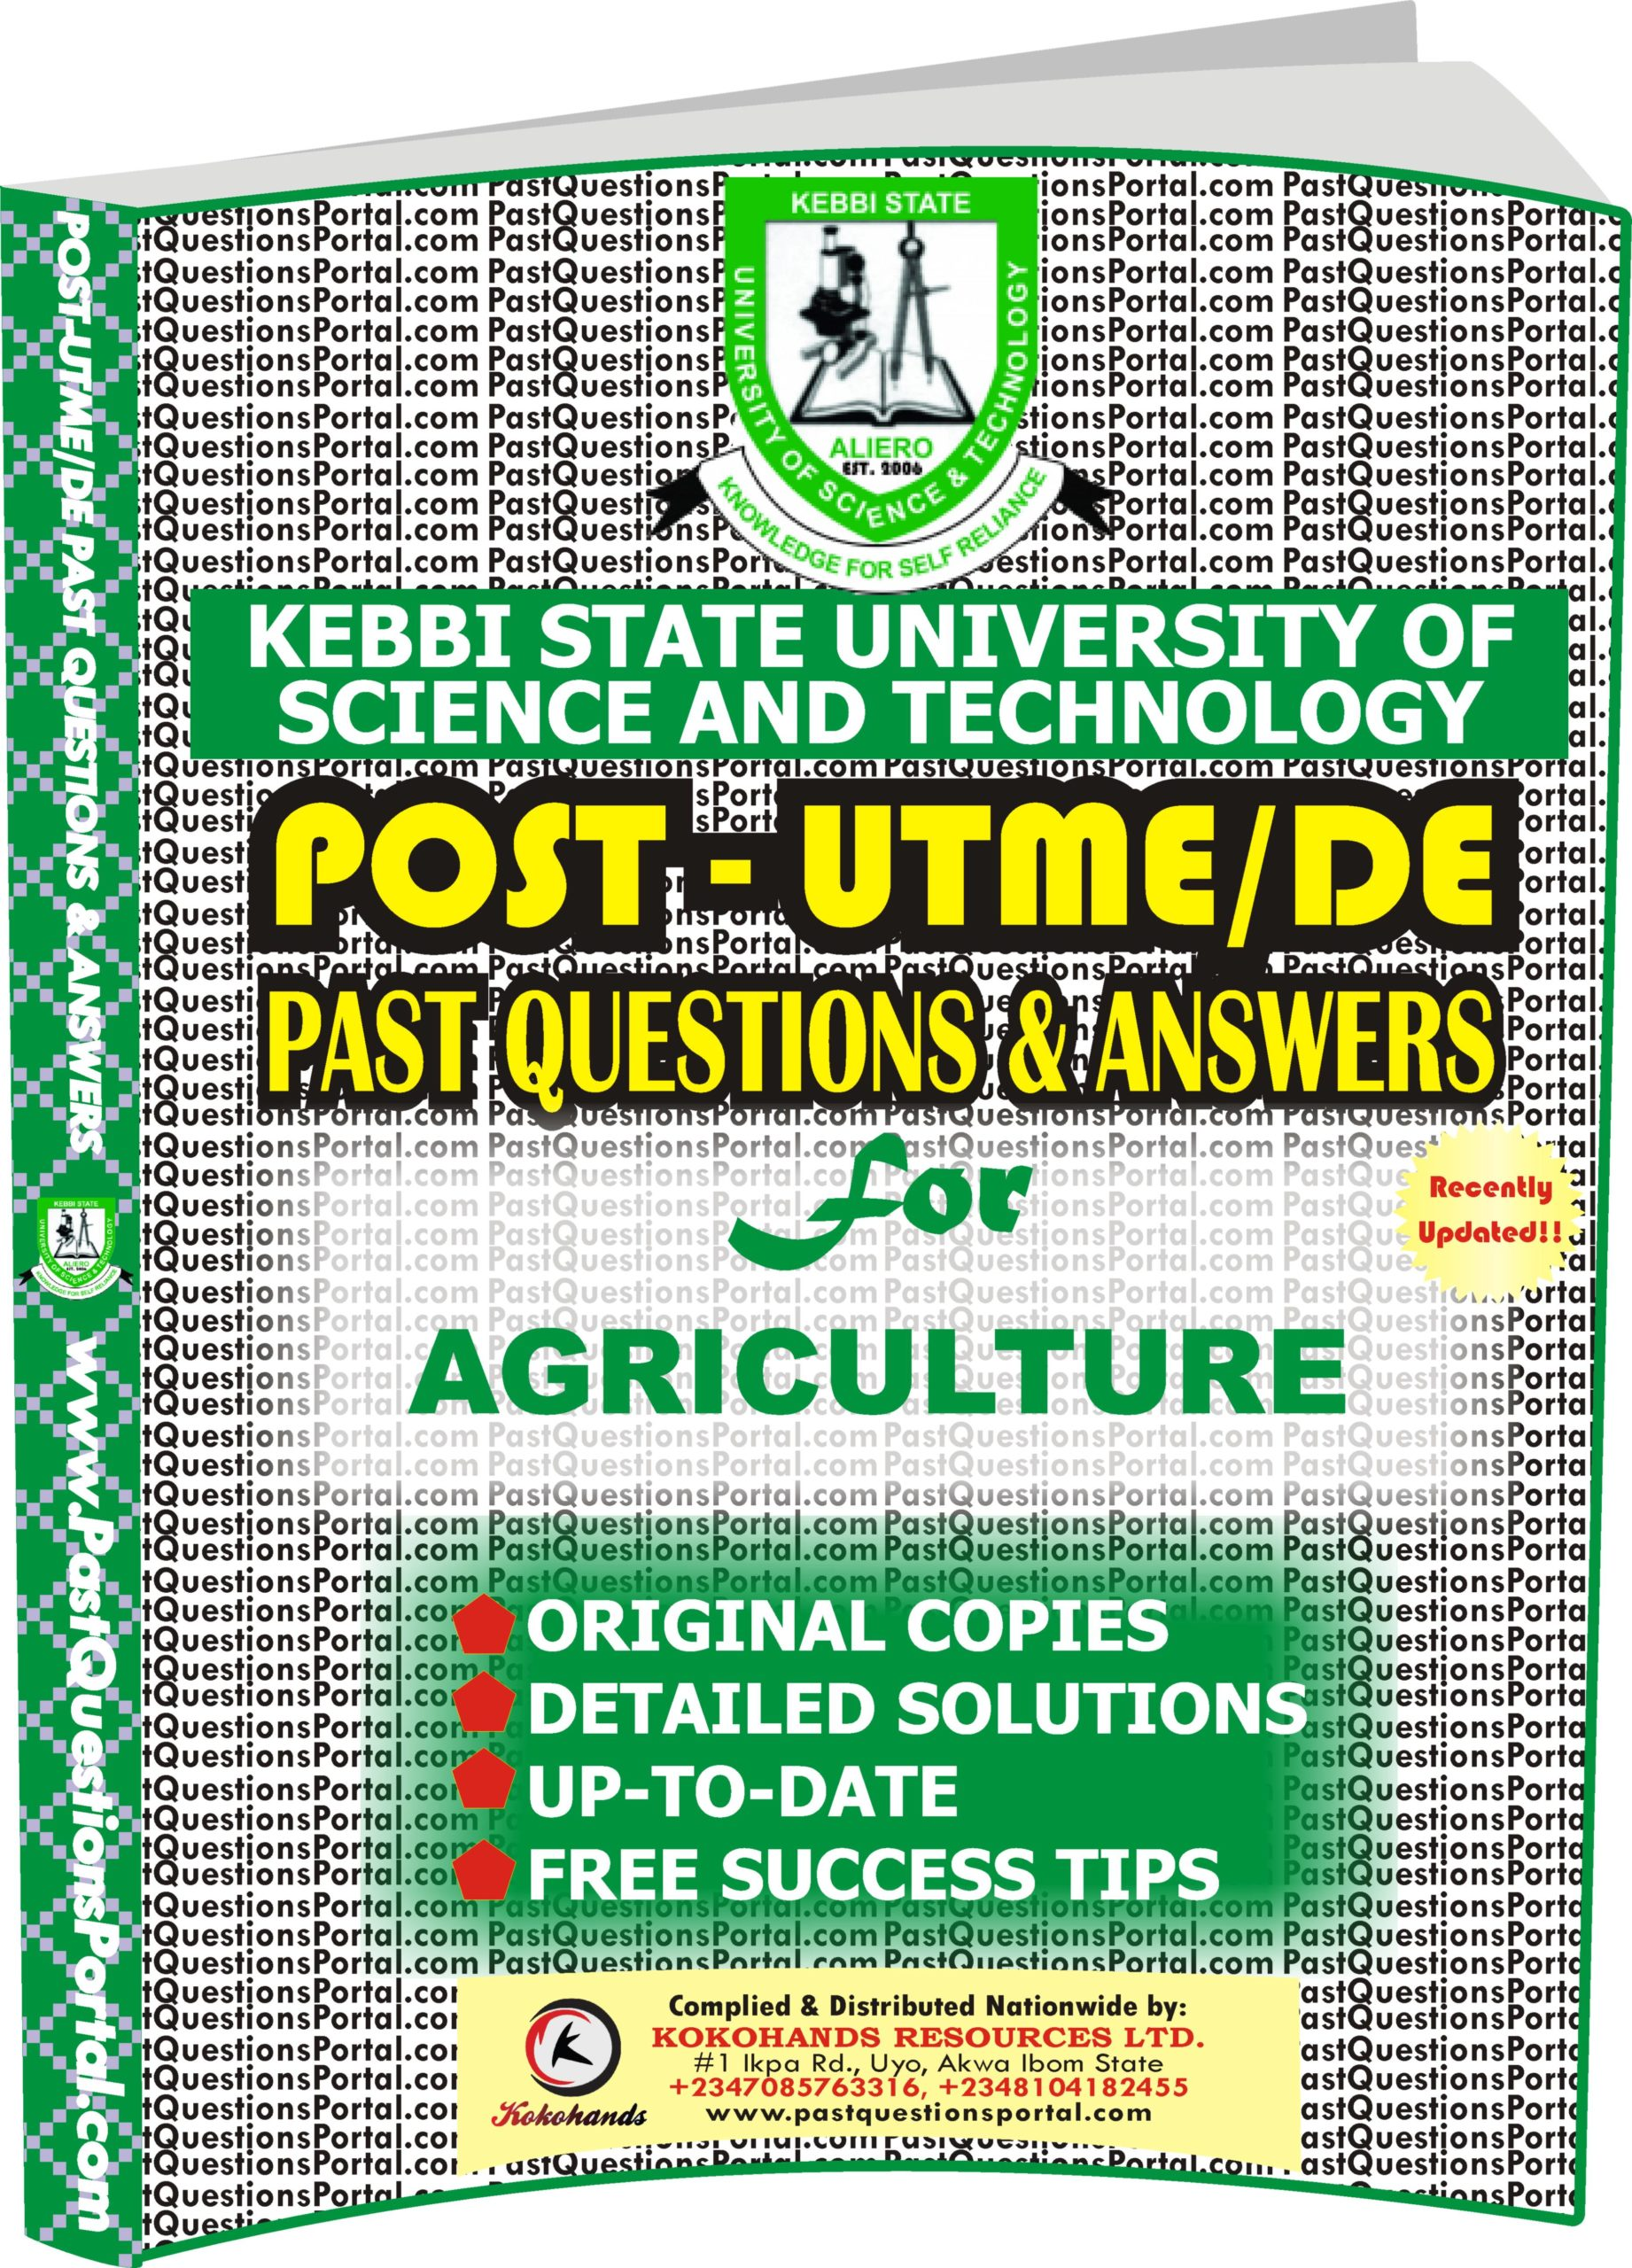 KSUSTA Post UTME Past Questions for AGRICULTURE